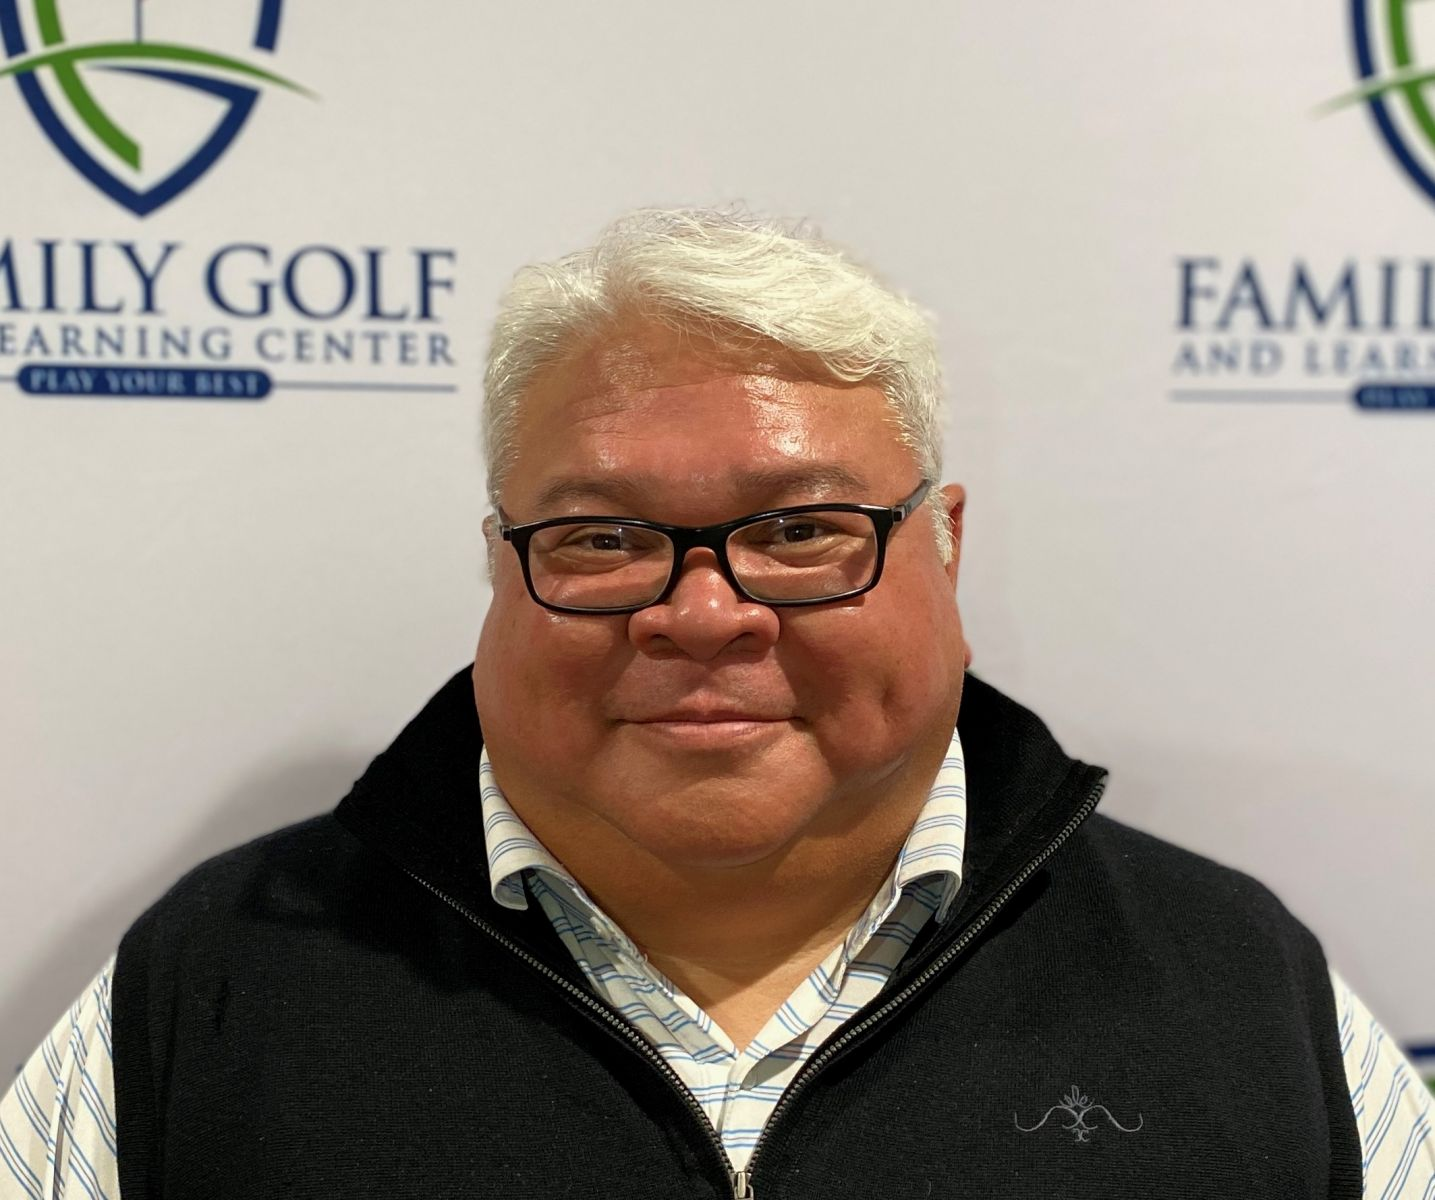 RJ Villafuerte, teaching professional at Family Golf & Learning Center in St. Louis